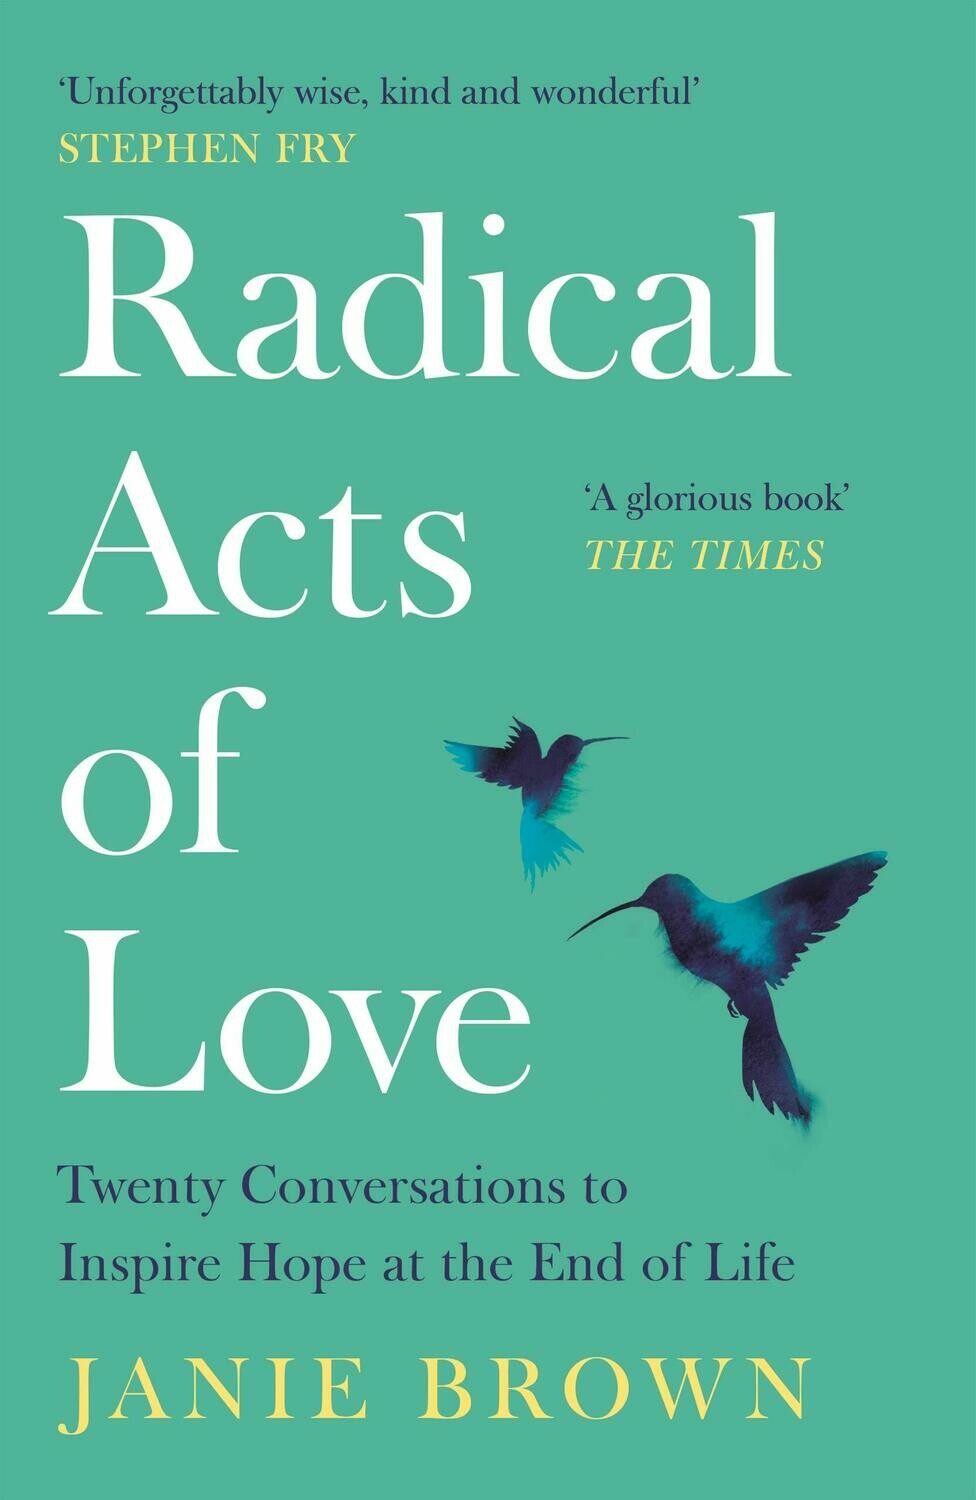 Radical Acts of Love: Twenty Conversations to Inspire Hope at the End of Life